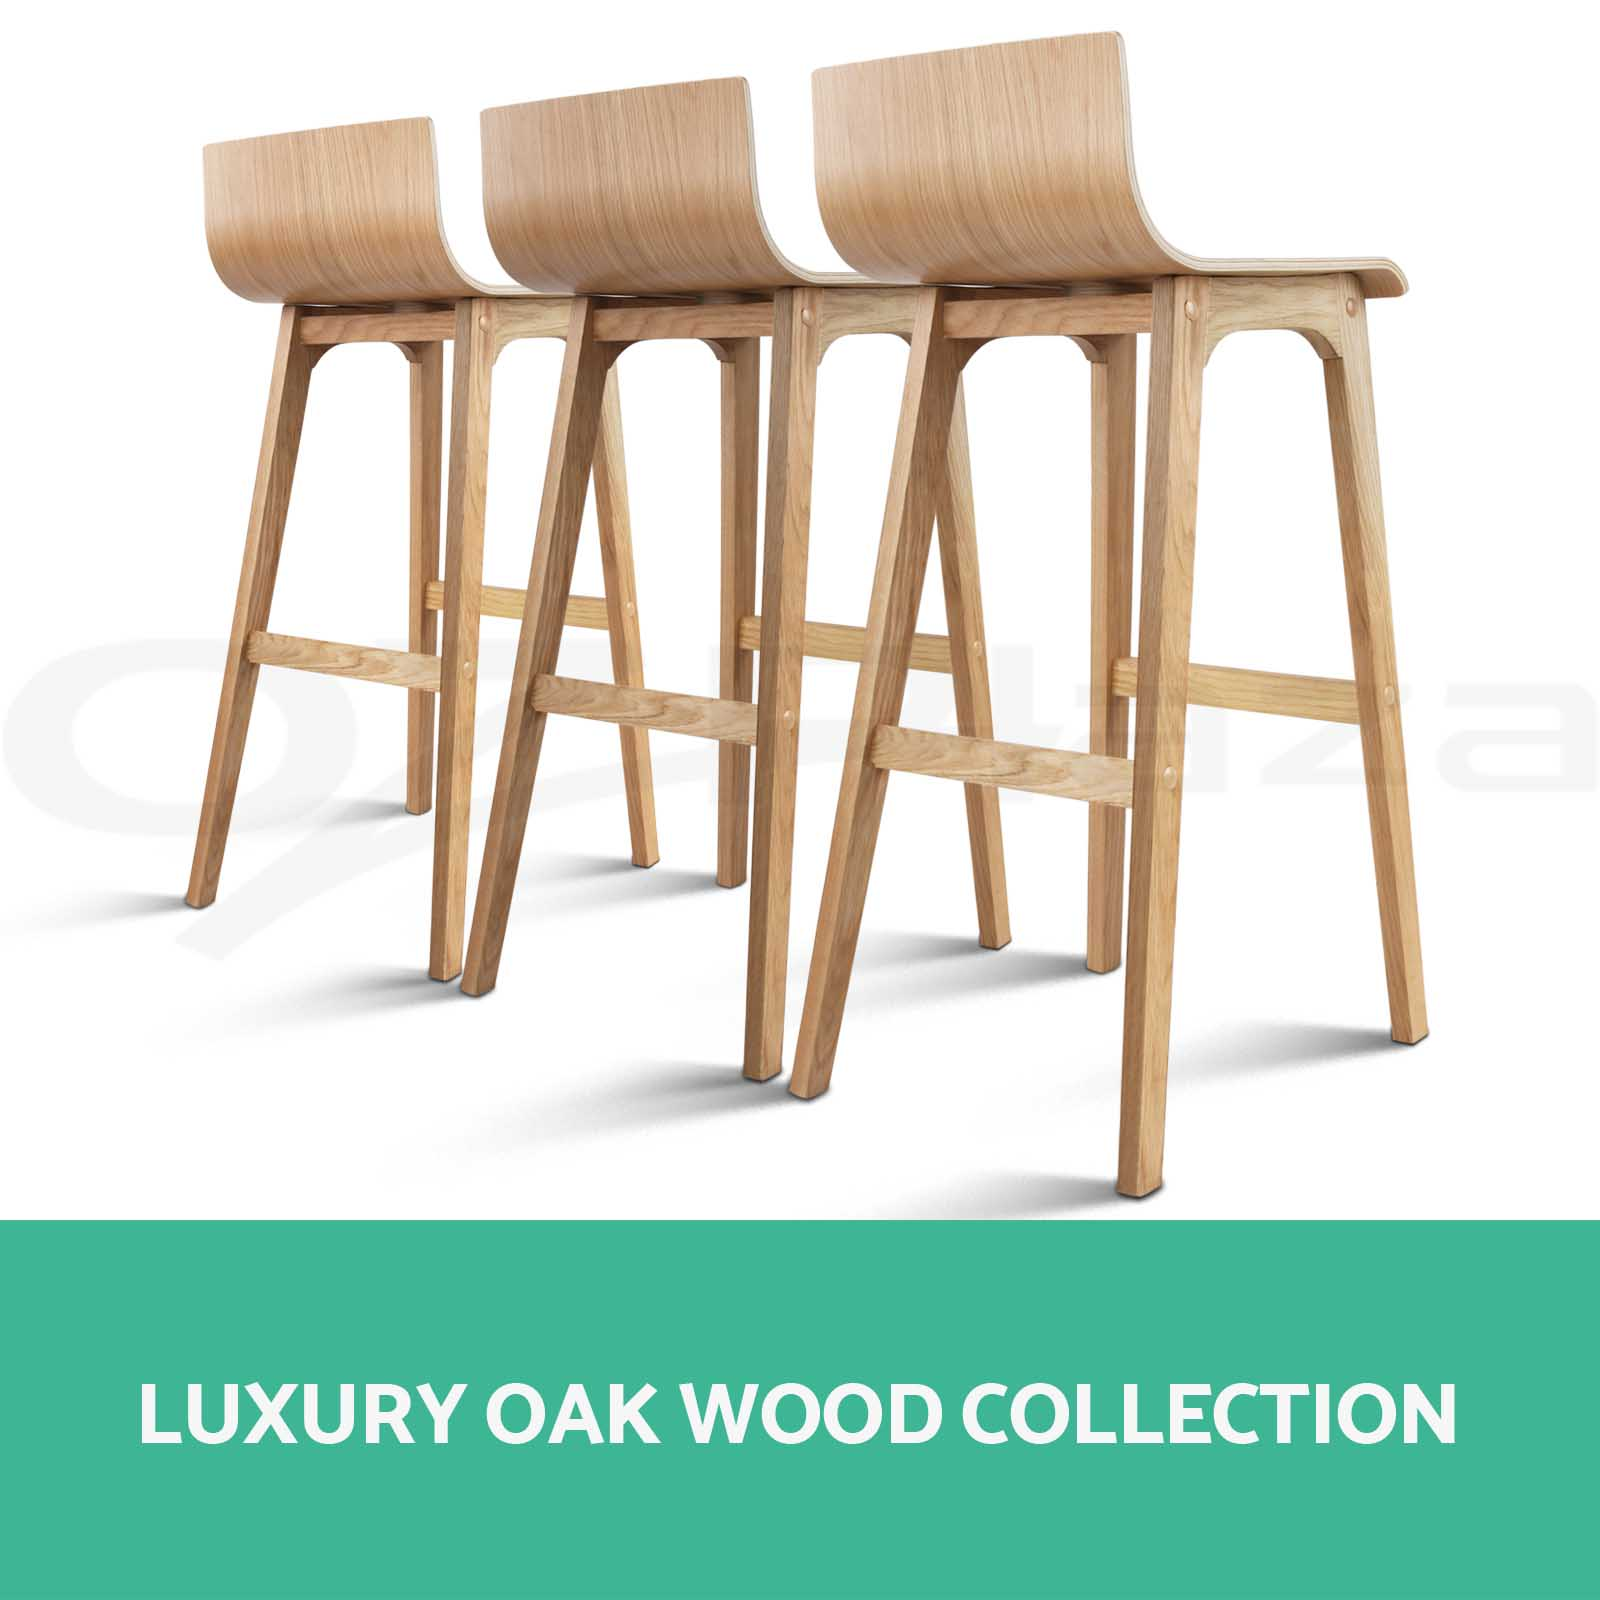 4x Oak Wood Bar Stools Wooden Barstool Dining Chairs